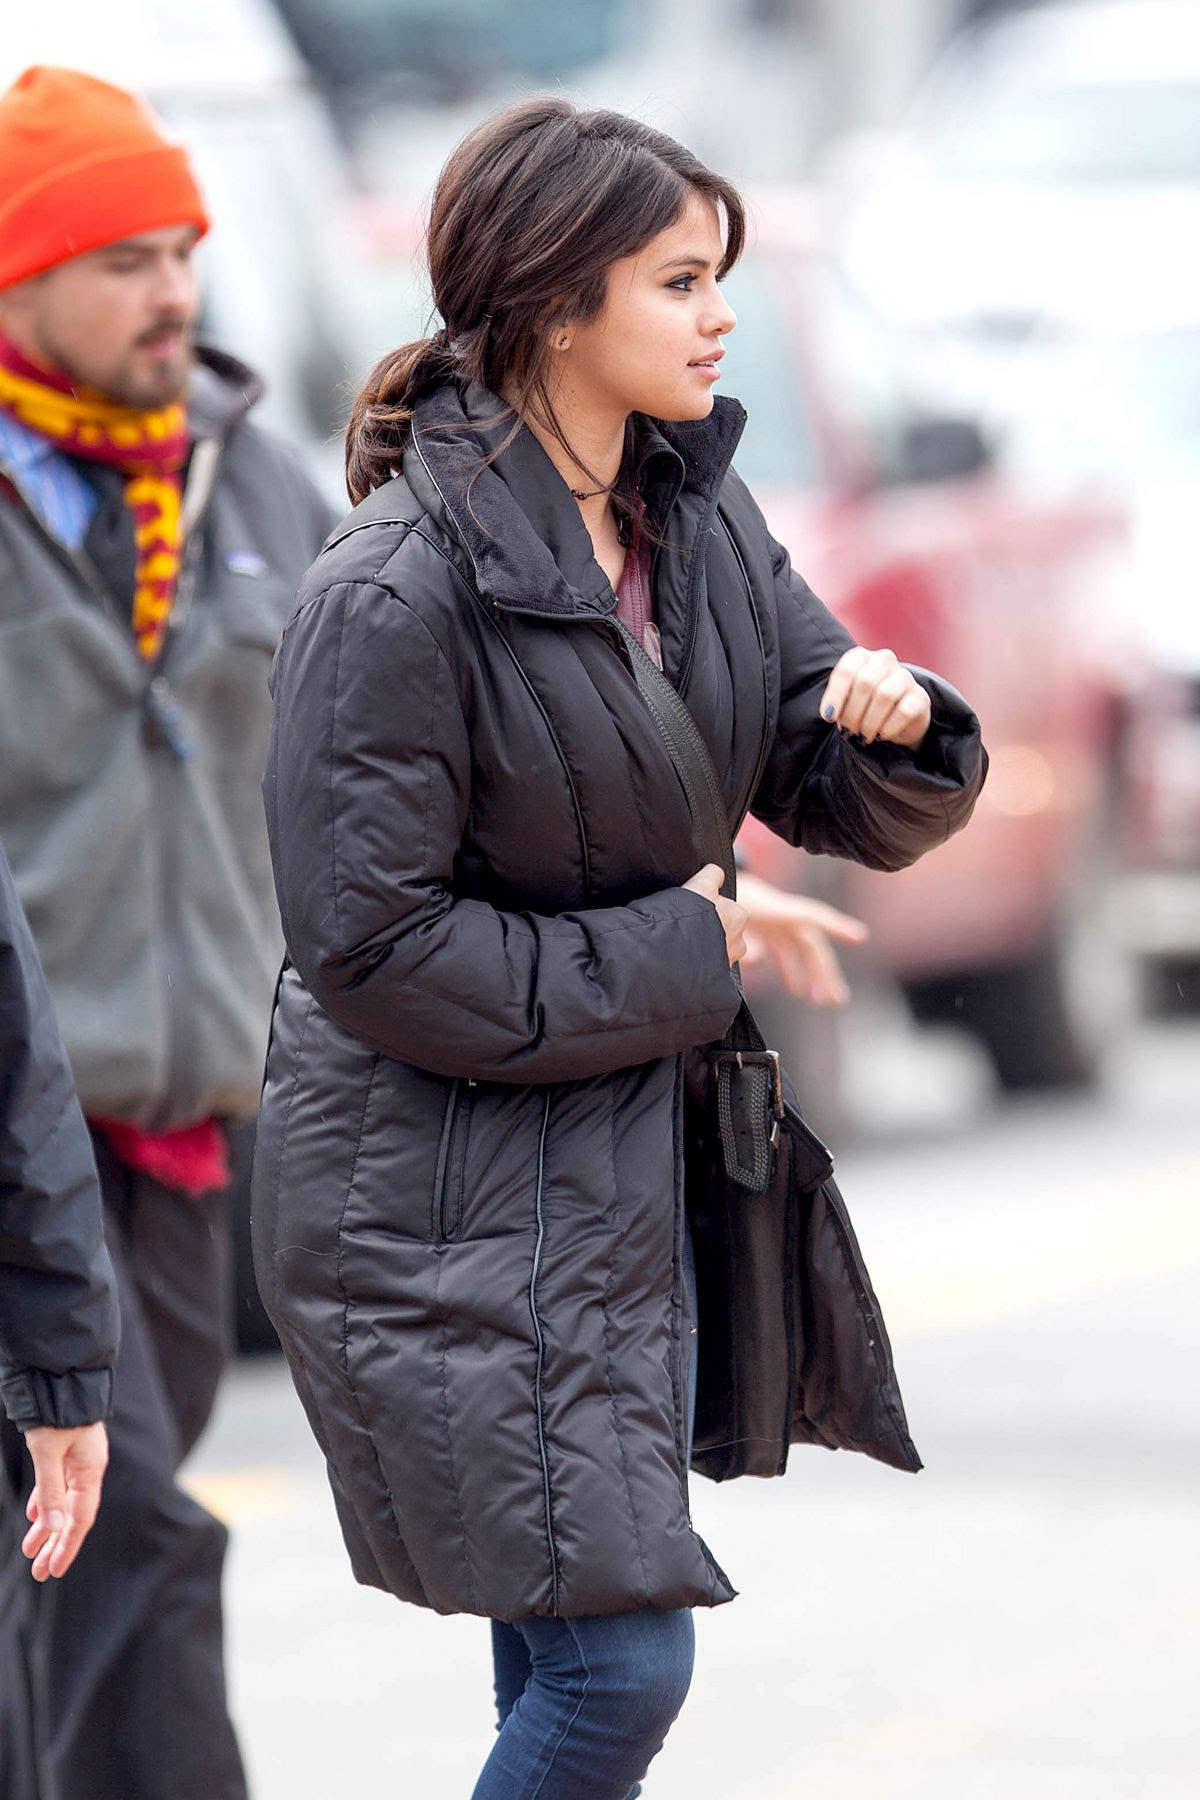 SELENA GOMEZ on the Set of The Revised Fundamentals of Caregiving in Cartersville